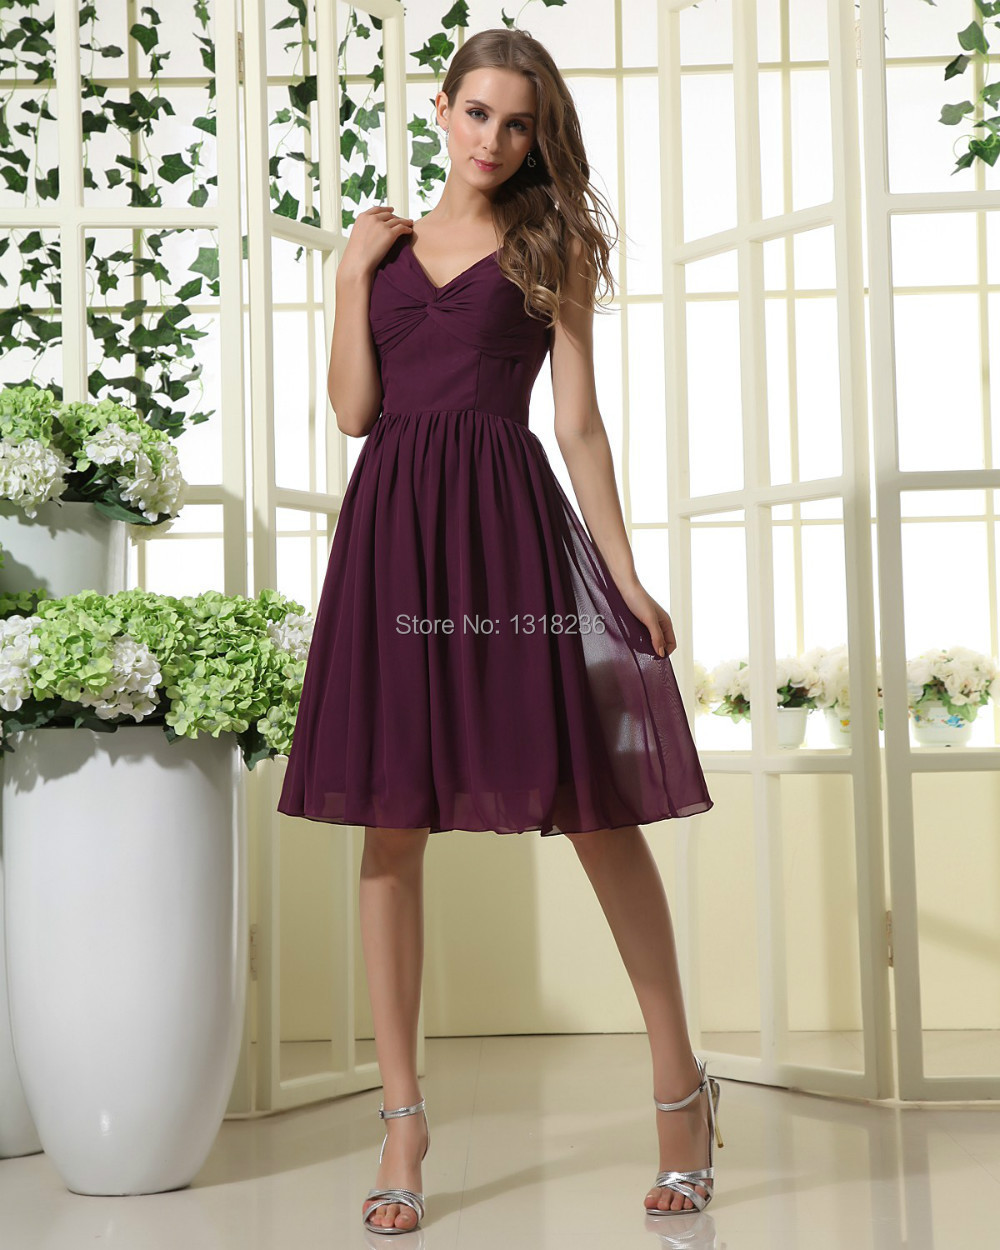 Plum Chiffon Knee Length Bridesmaid Dresses 2015  Dress images